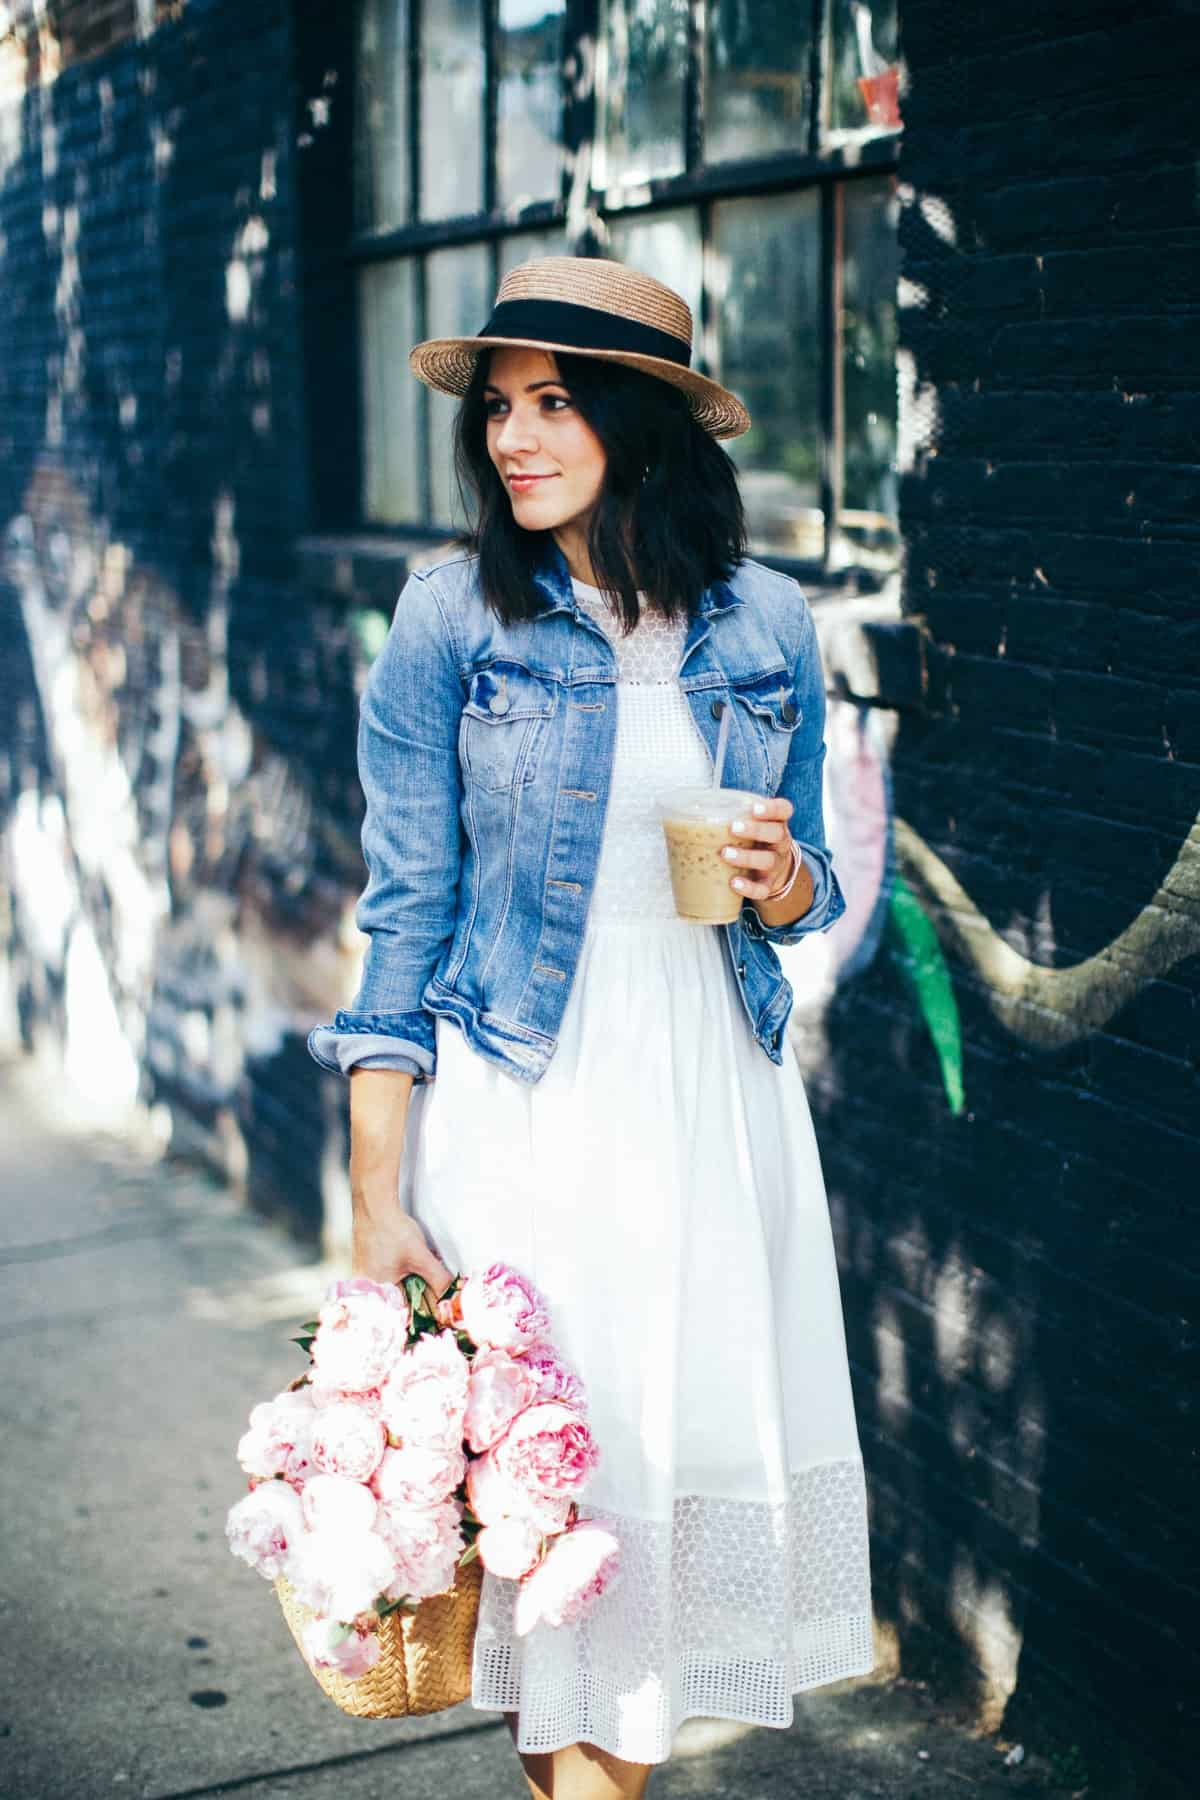 Pink Peonies, summer outfit ideas, white dress ideas - My Style Vita @mystylevita